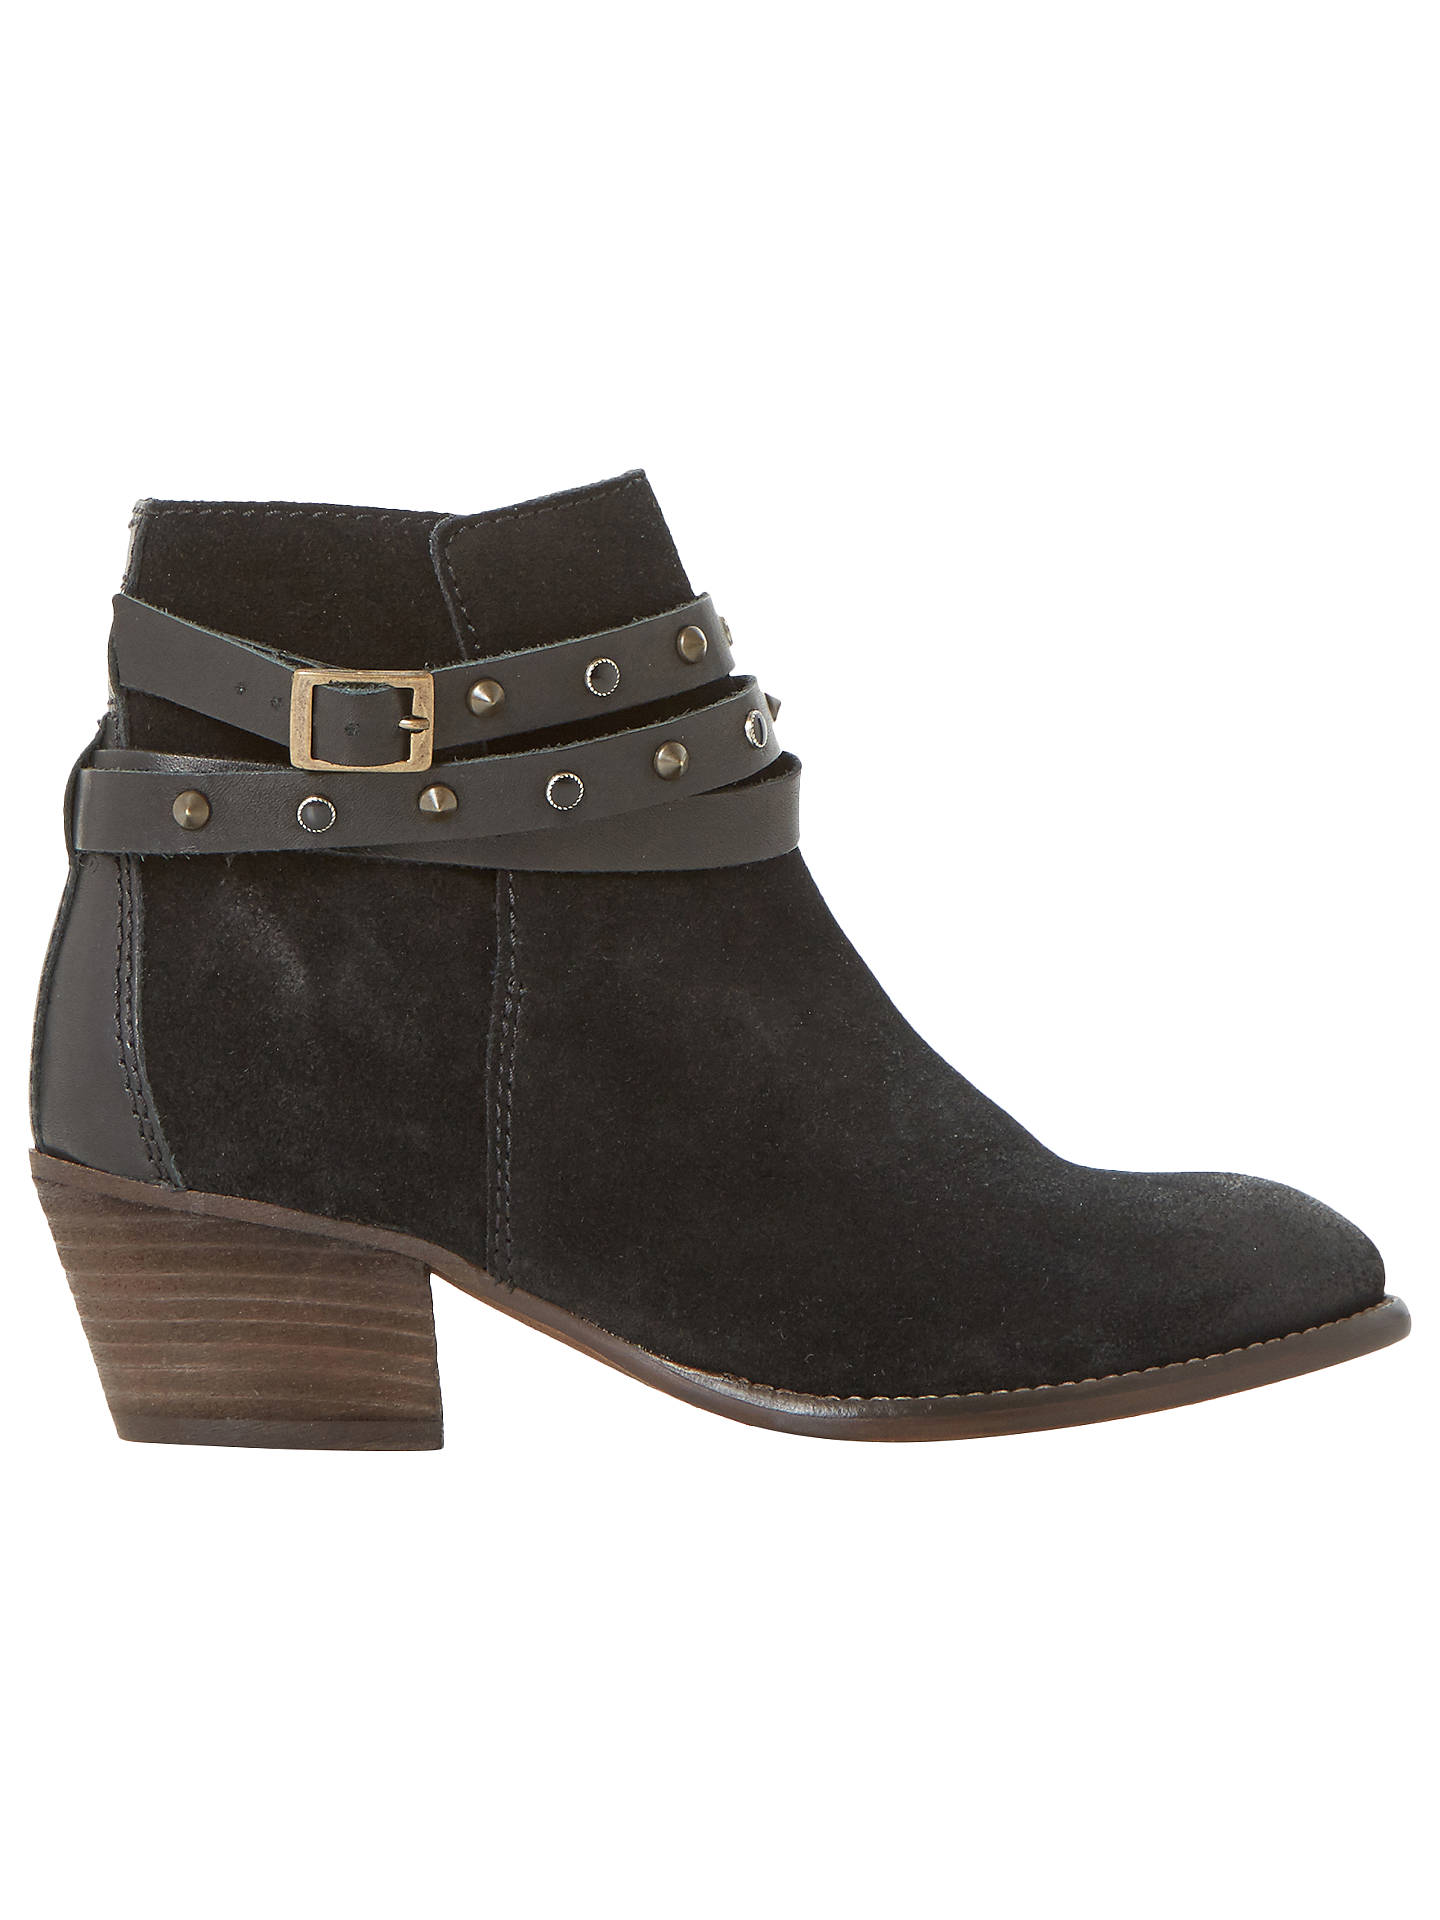 Buy Bertie Prynceton Block Heeled Ankle Boots, Black, 3 Online at johnlewis.com